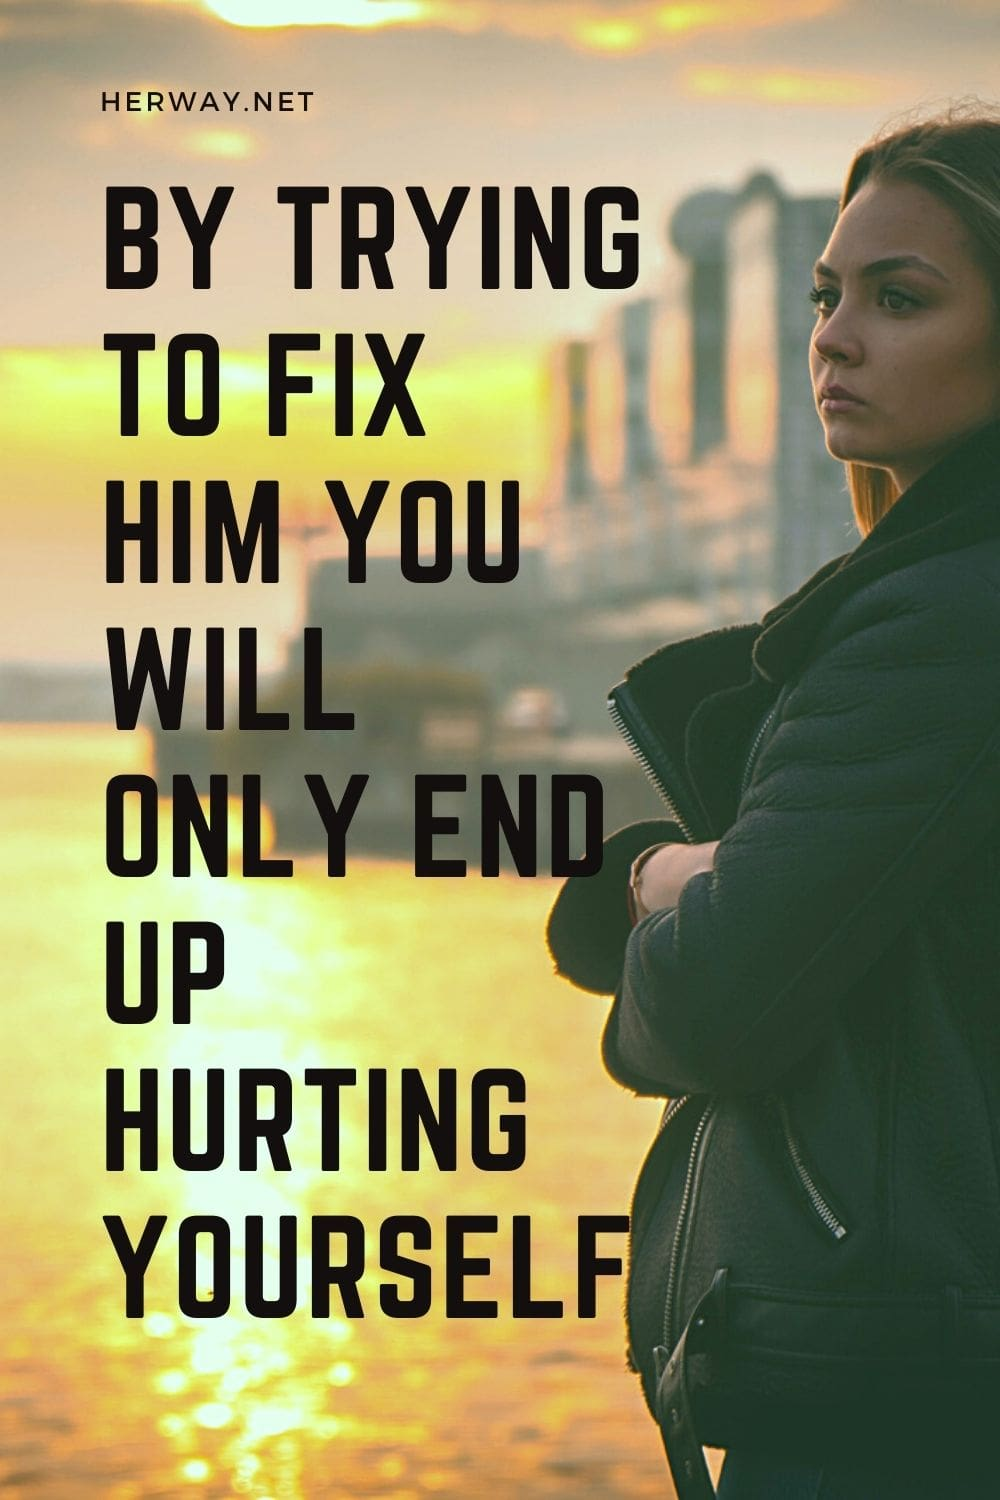 By Trying To Fix Him You Will Only End Up Hurting Yourself